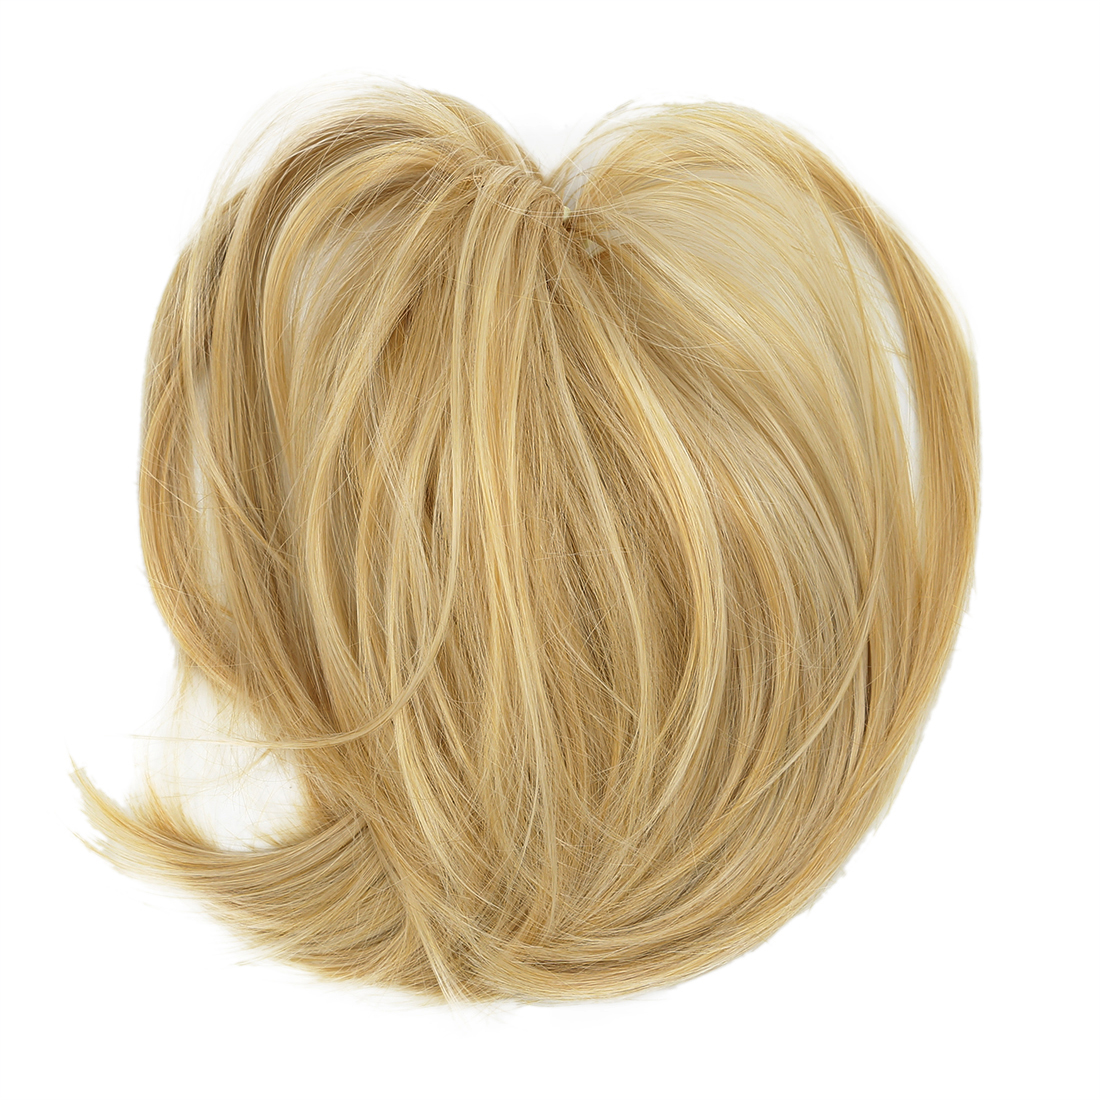 Wigs Extensions Hair Pieces - Discount Wig Supply